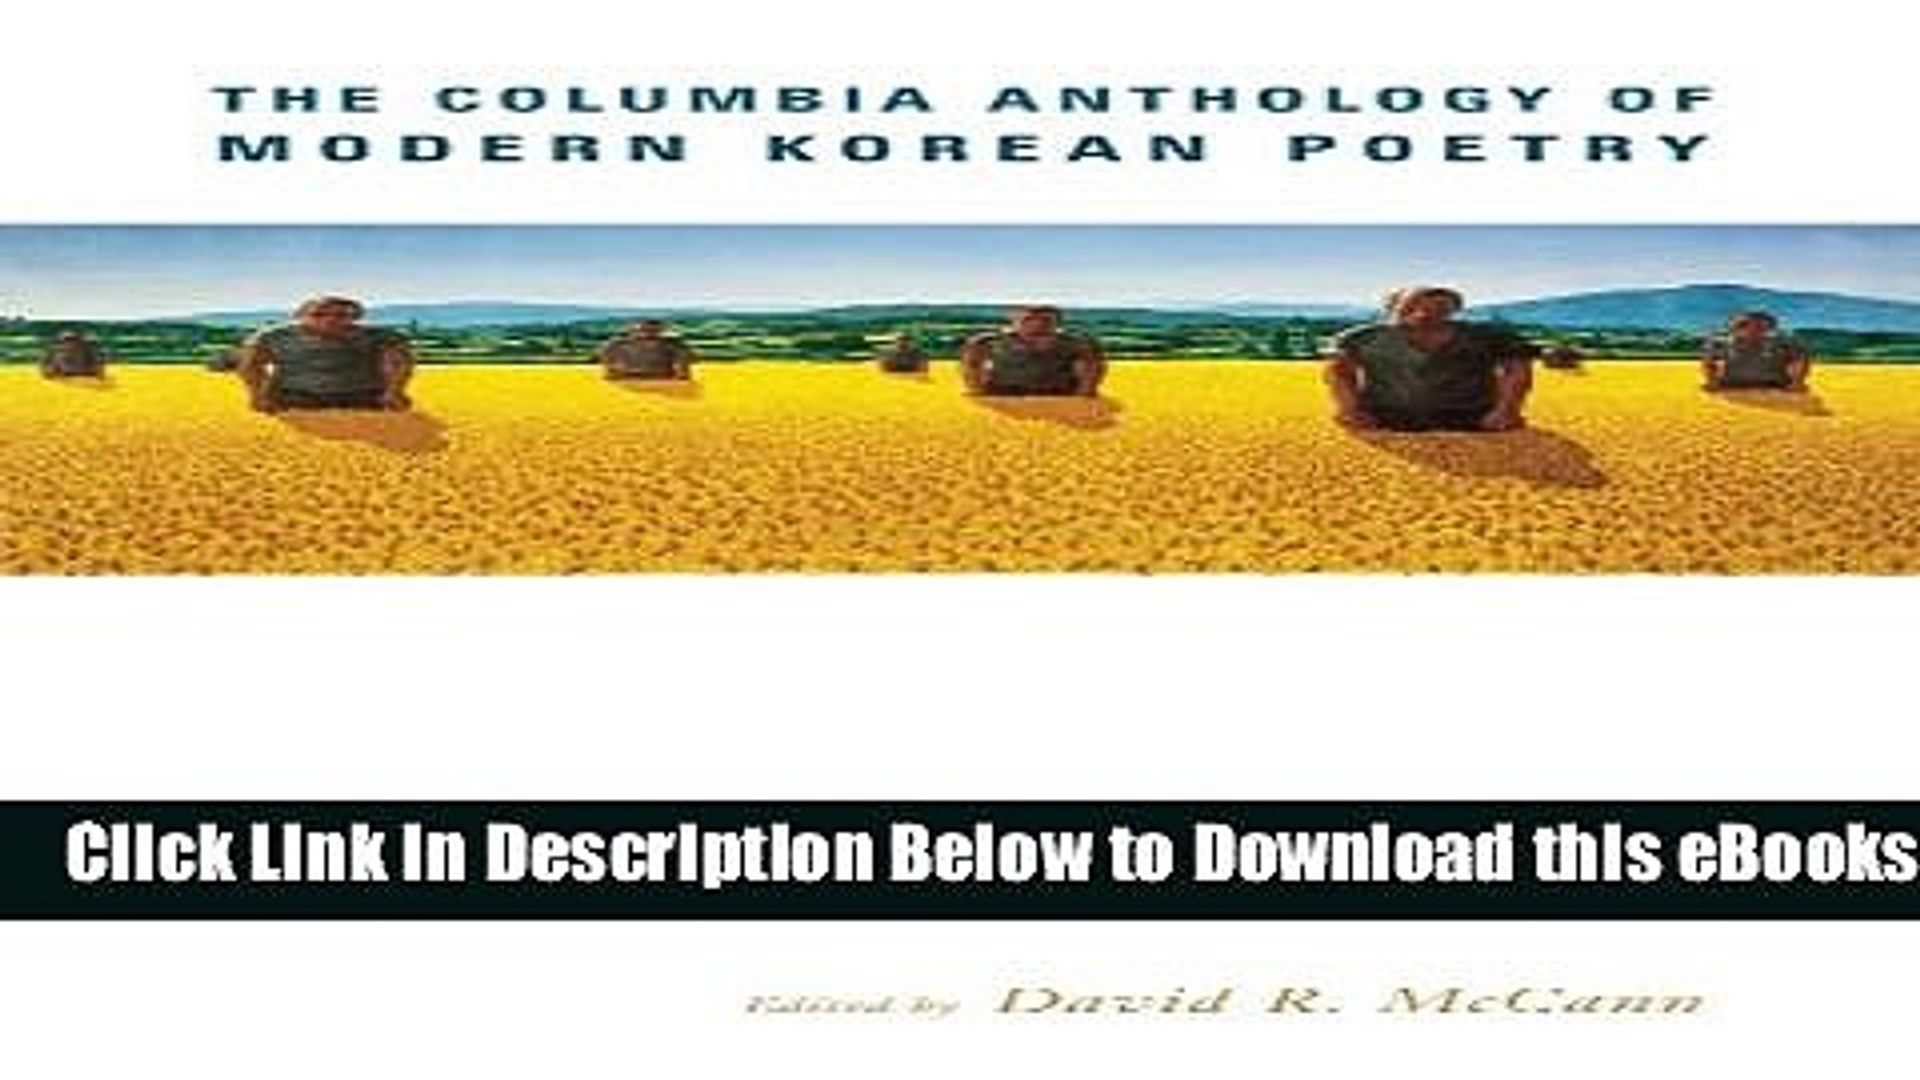 [Download] The Columbia Anthology of Modern Korean Poetry Free Books